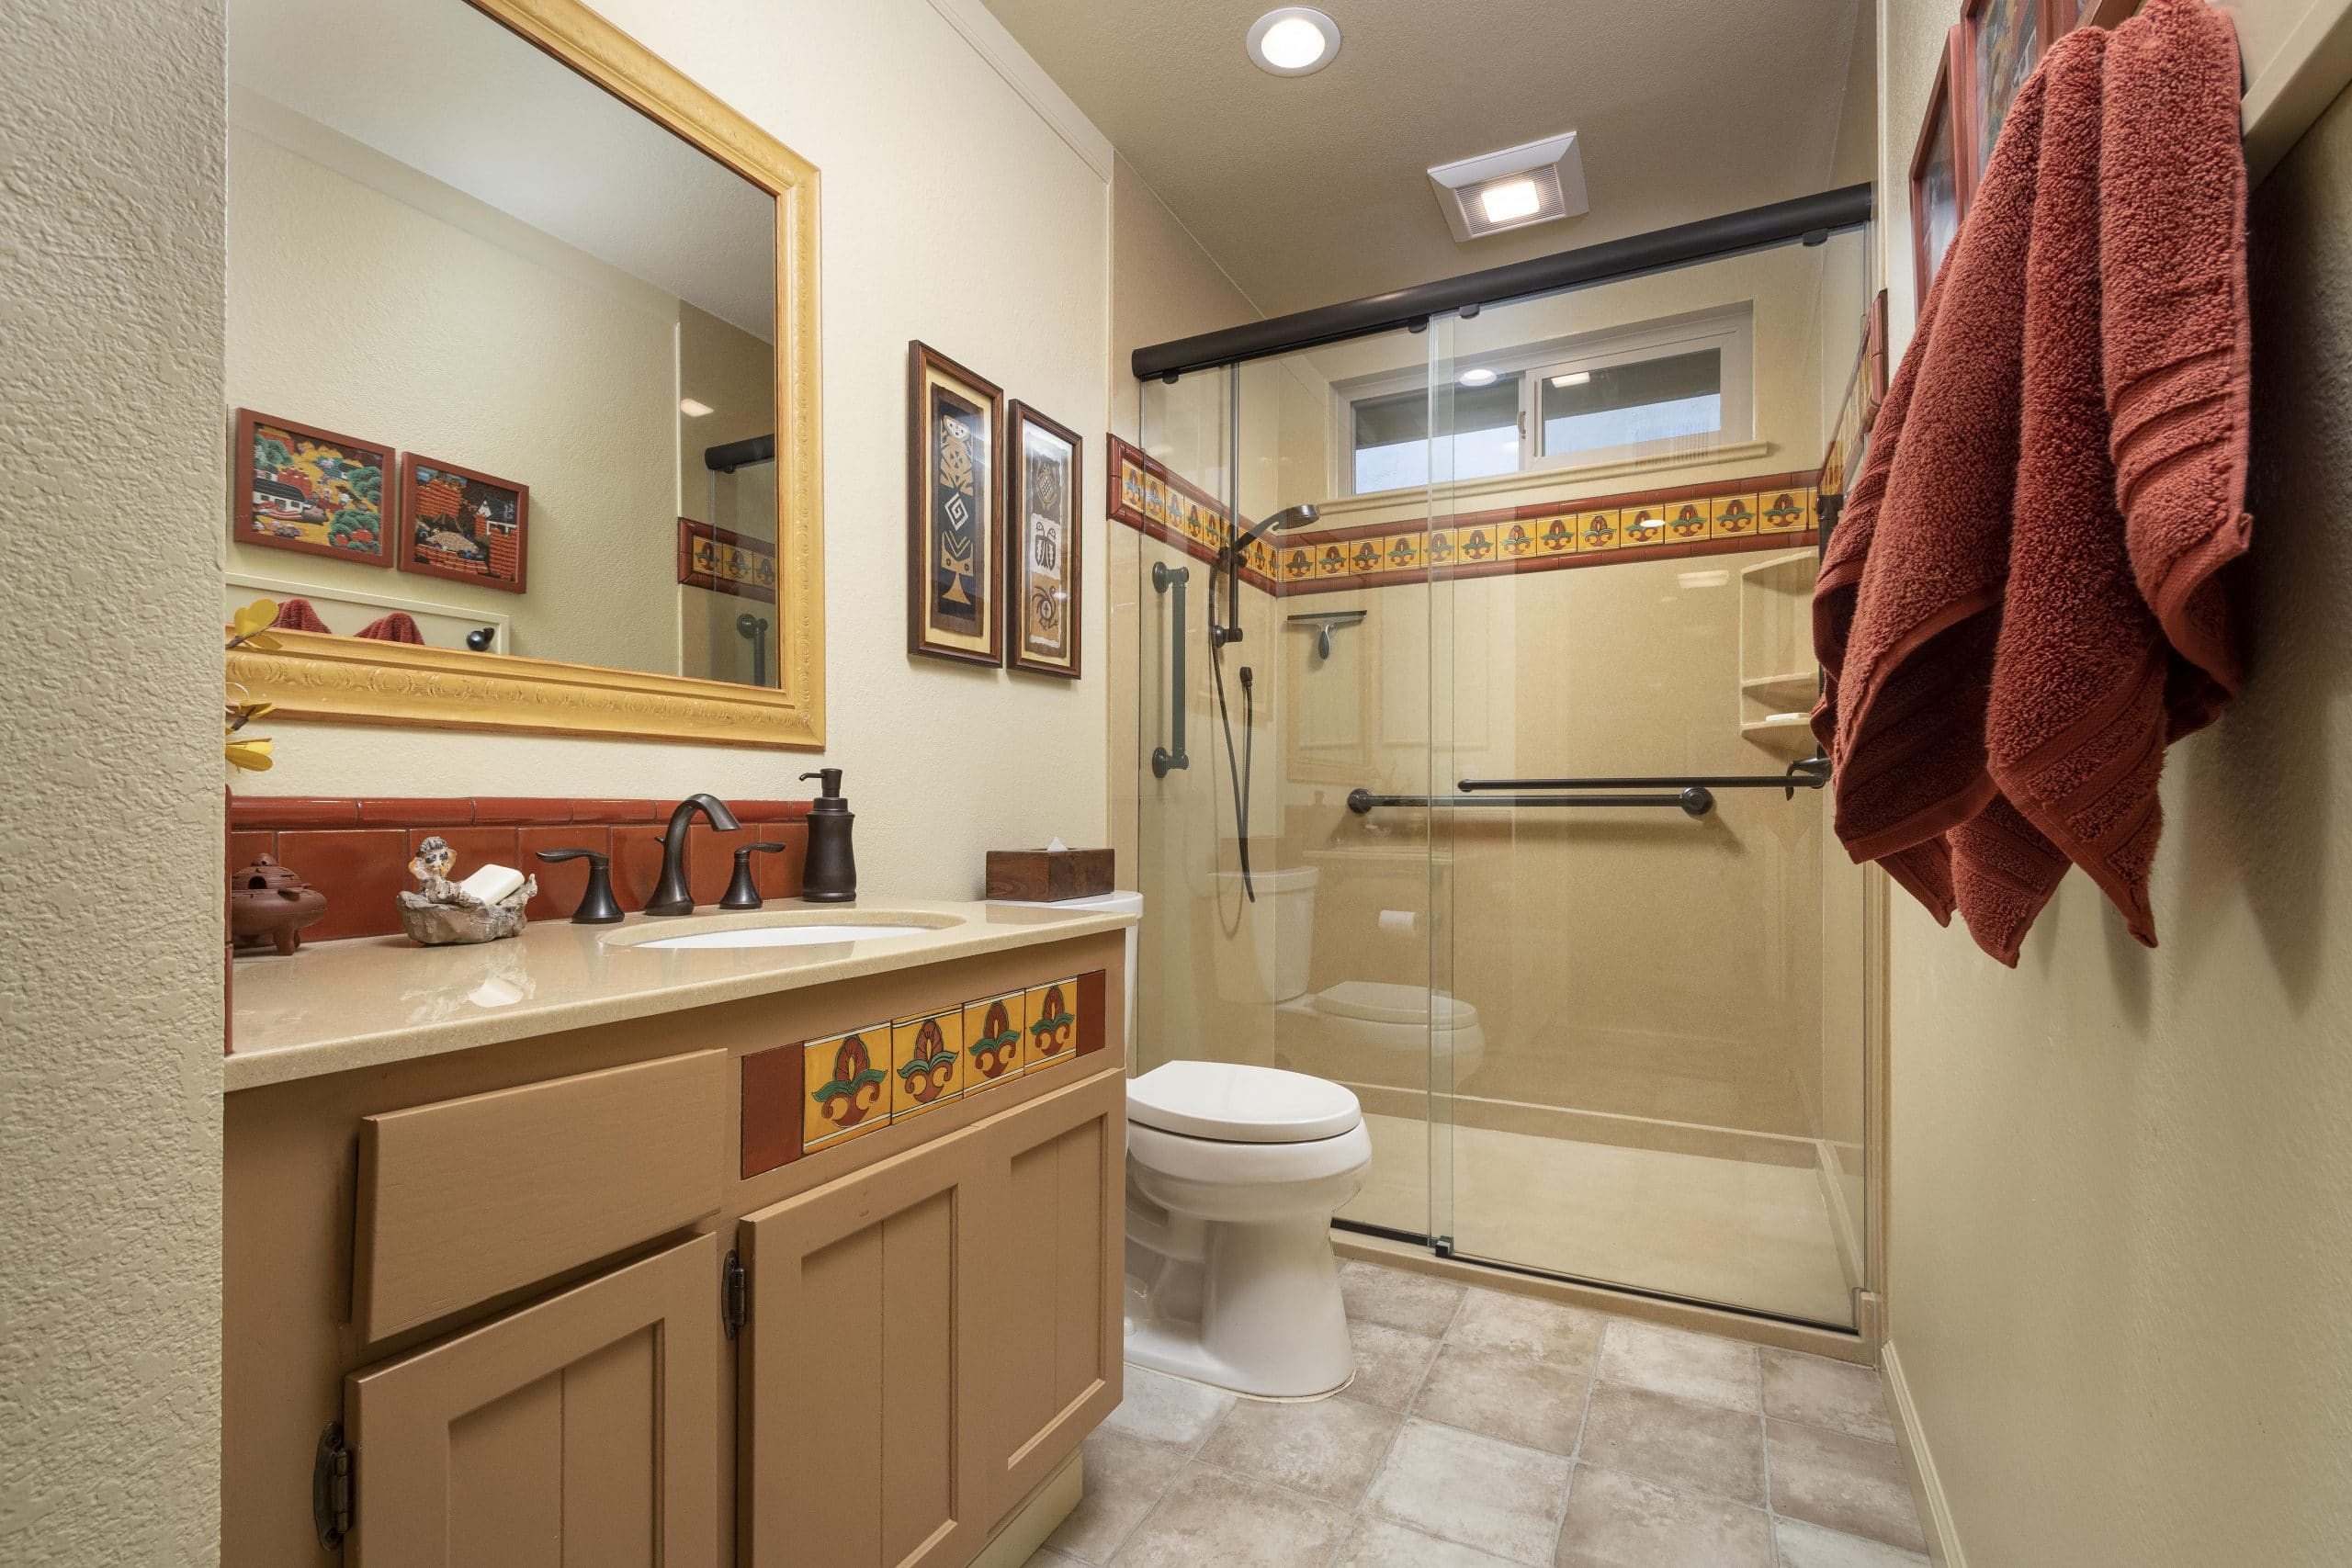 Bath Design Tips to Enable Aging in Place